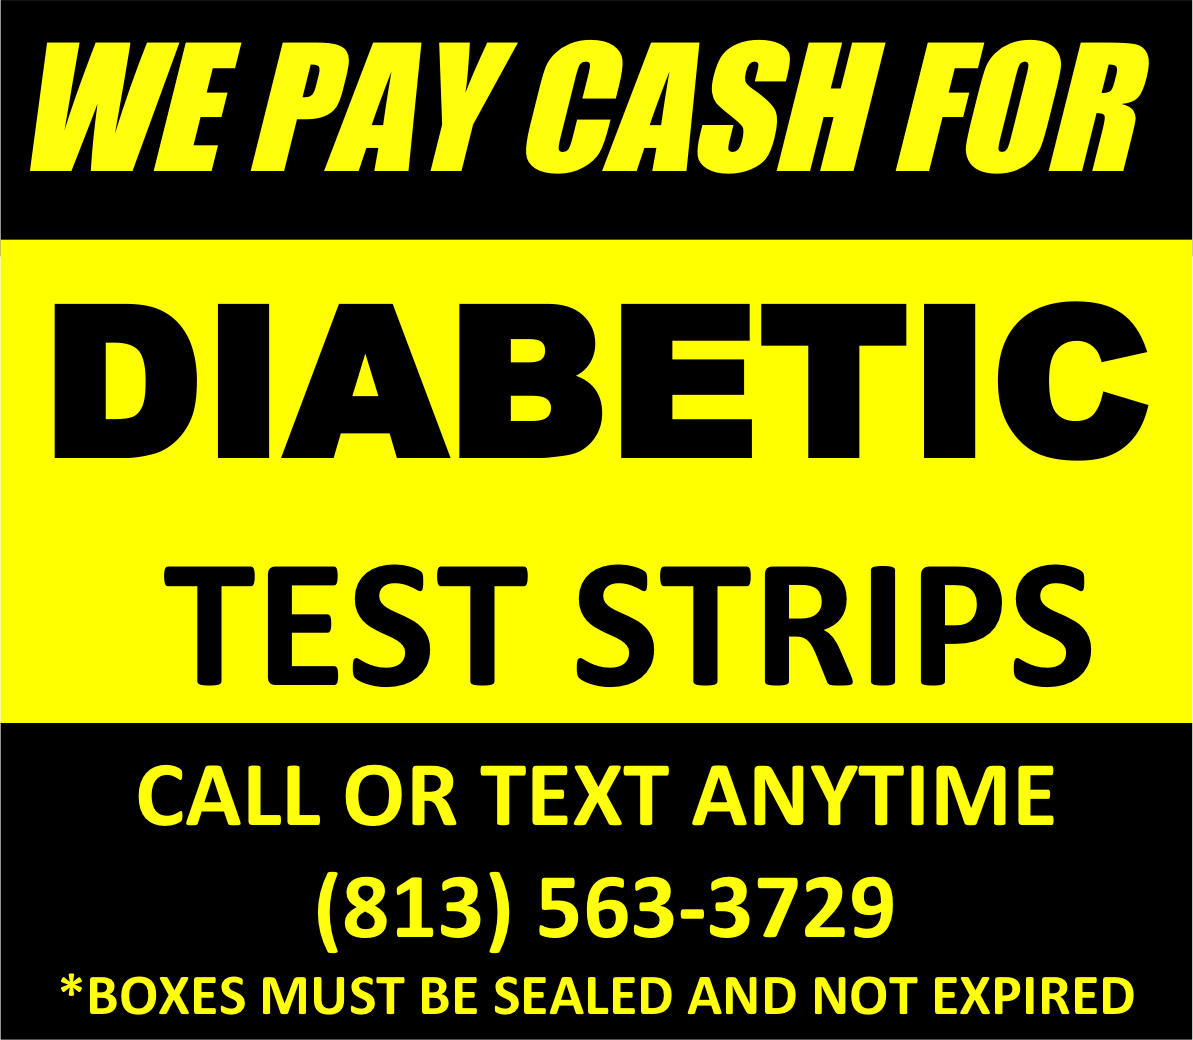 DiabeTests Supply